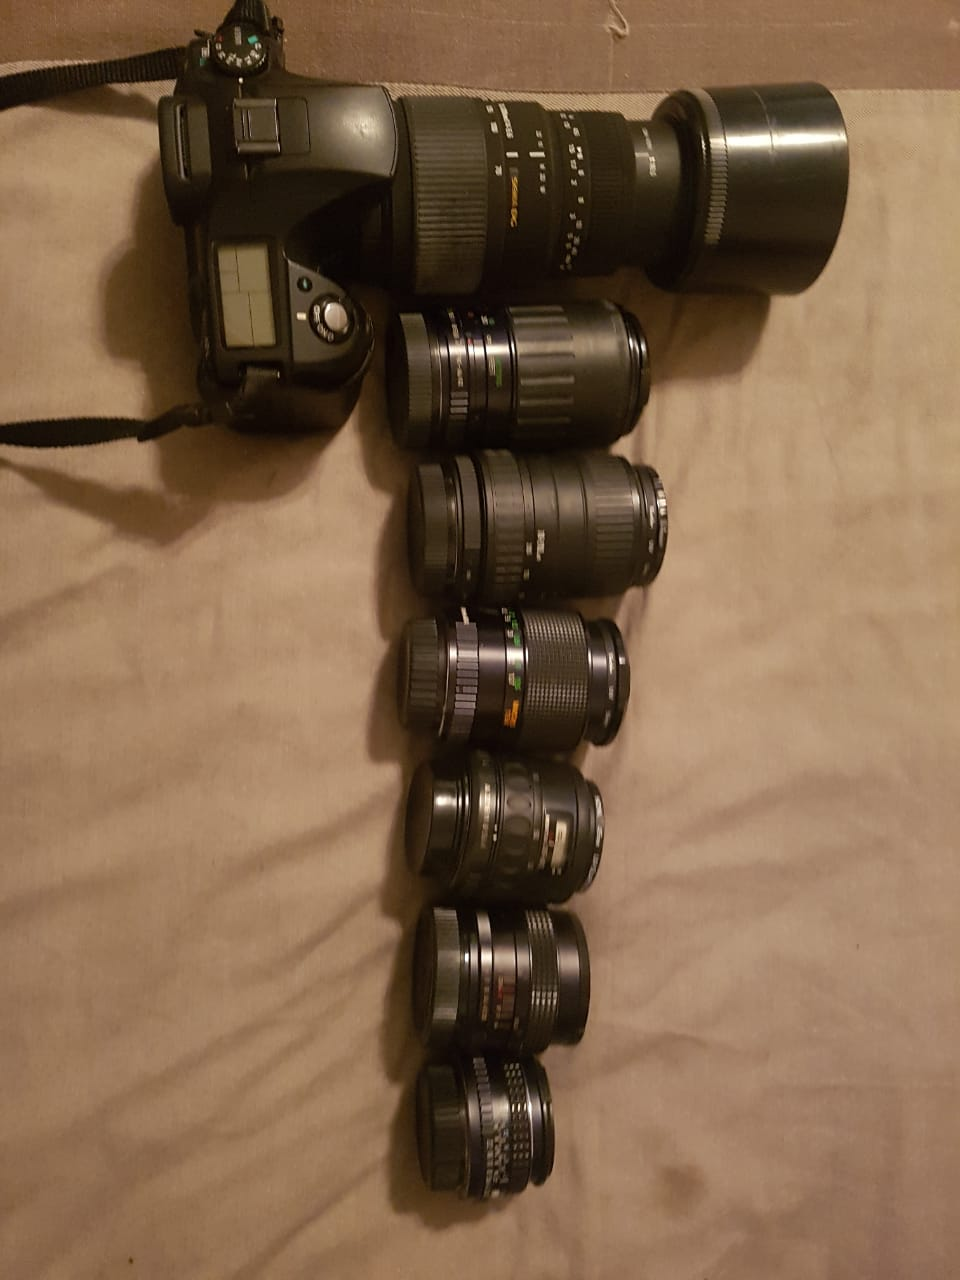 Pentax Camera K10 with a range of lenses